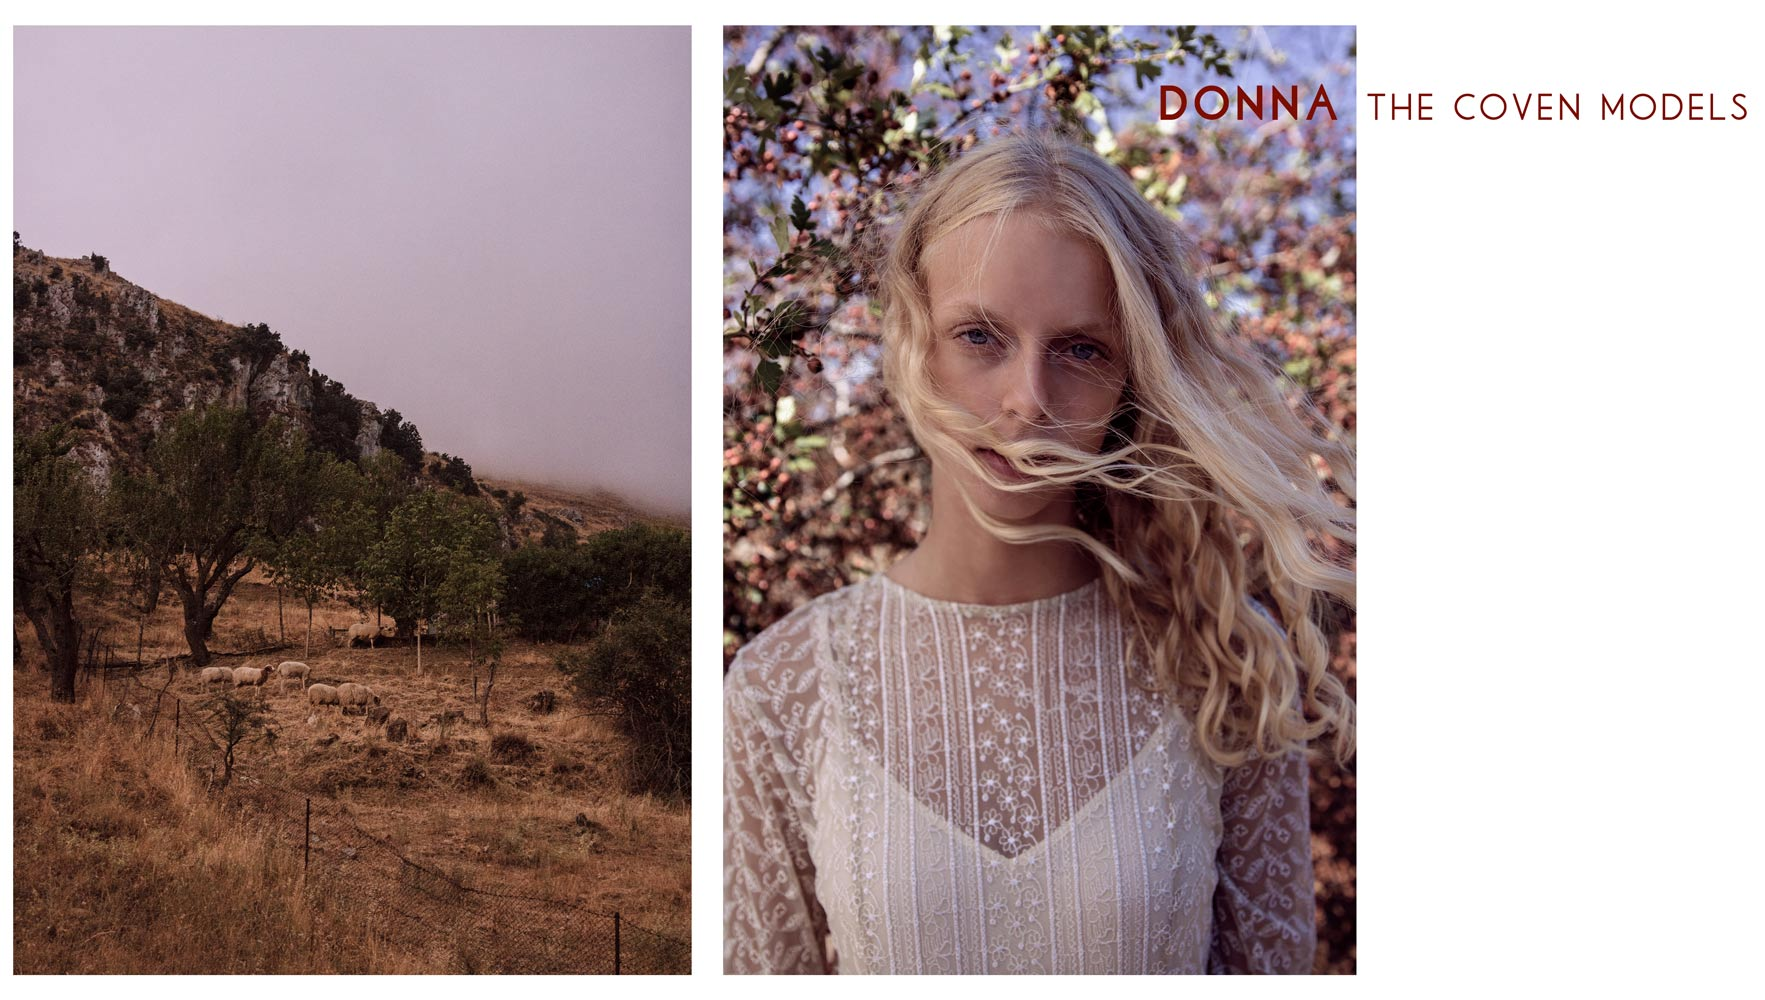 Donna – The Coven Models